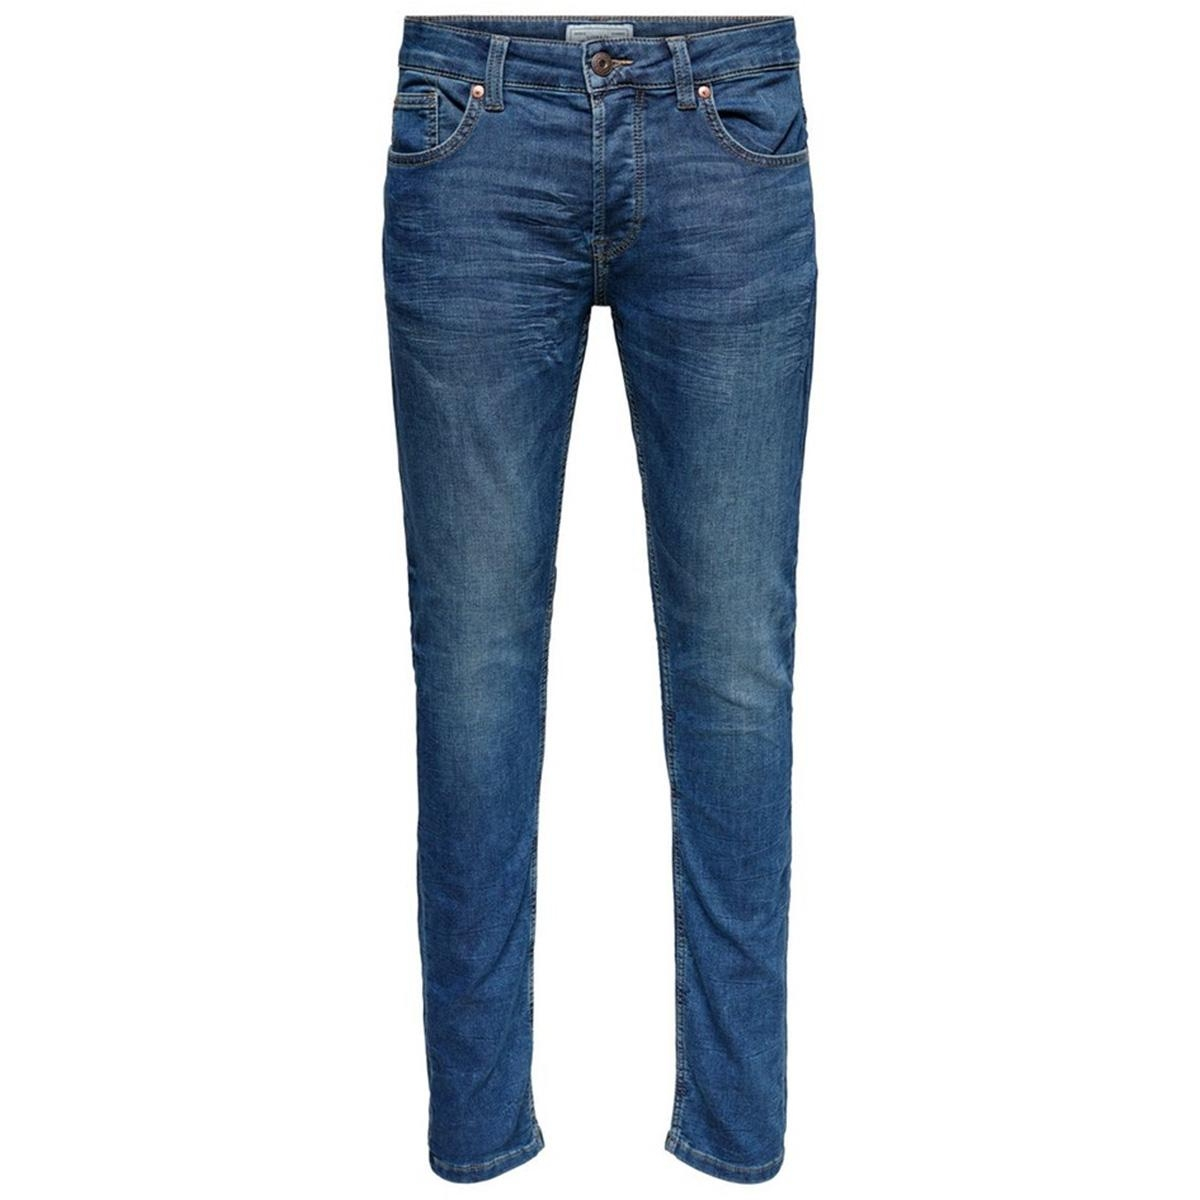 onsloom blue jog pk 8472 noos 22008472 only & sons jeans blue denim